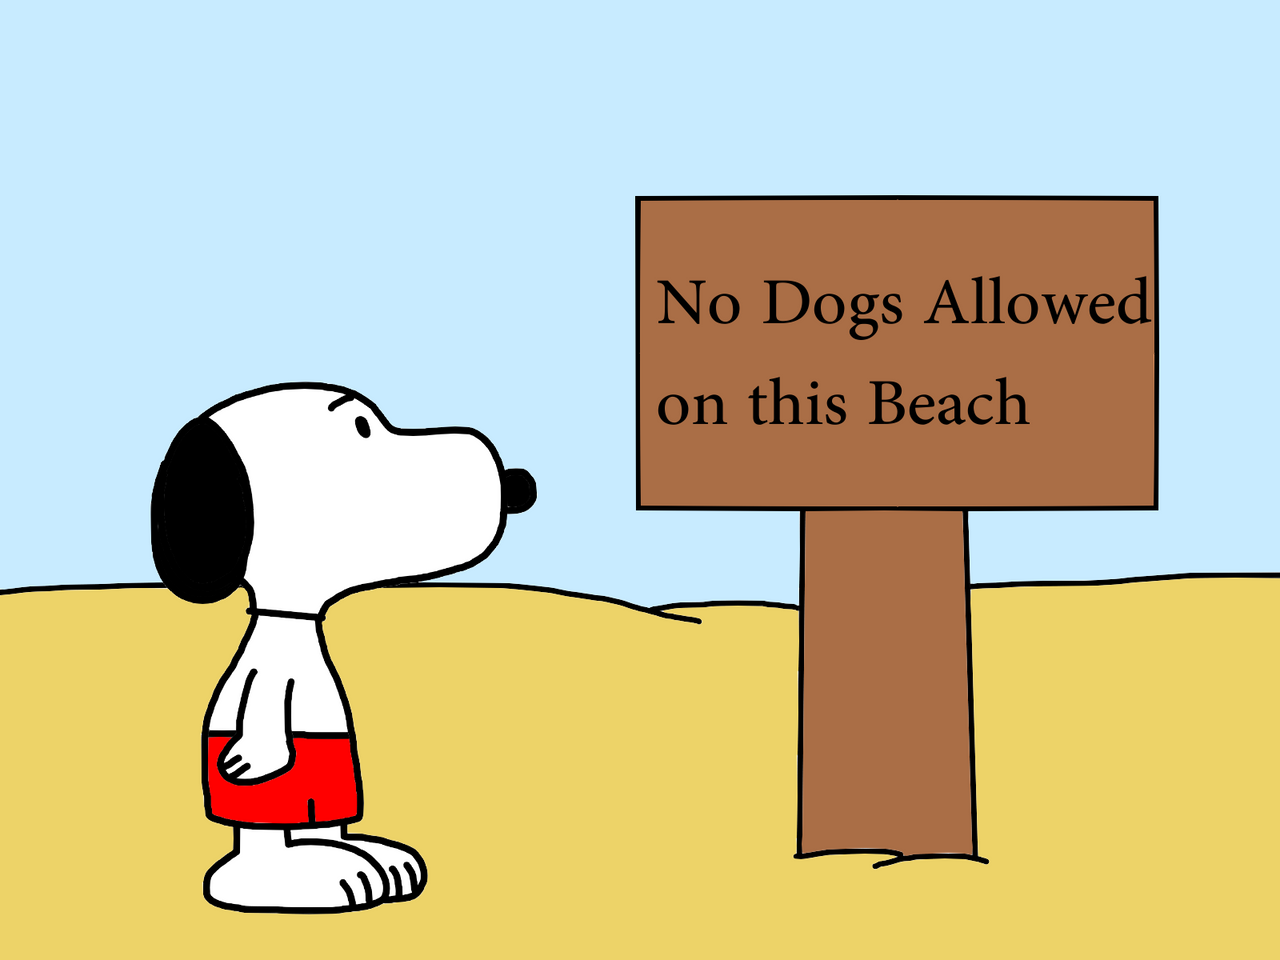 no dogs allowed Sidney gish songwriter & producer based in boston, new jersey, and the internet booking: ghorbal@apa-agencycom, cgoldberg@apa-agencycom say hi (but i suck at answering my inbox on time ☹): sidneyg156@gmailcom no dogs allowed, released 31 december 2017 1.